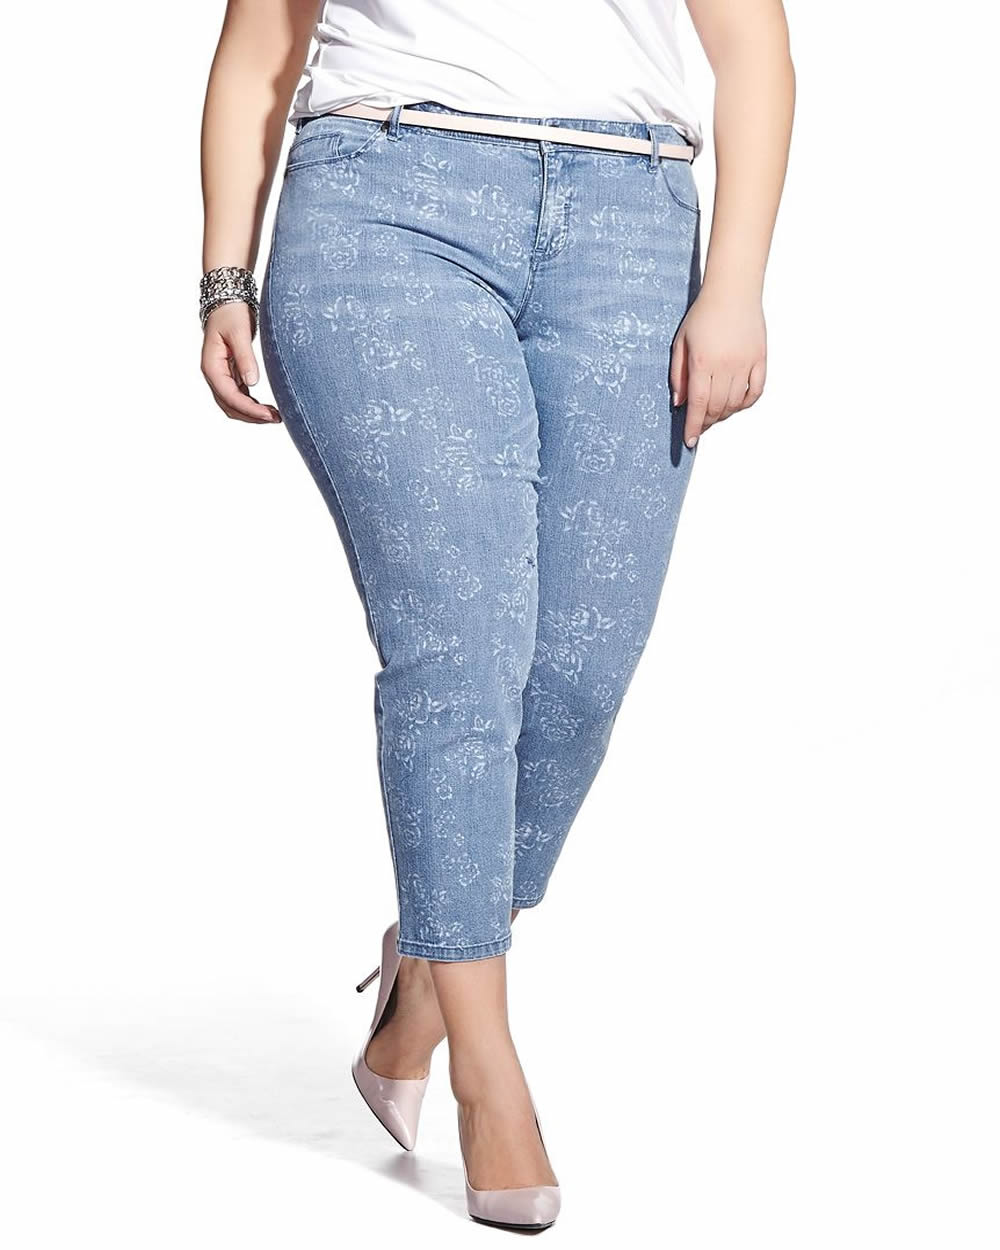 Plus Size Printed Jeans | Jeans To